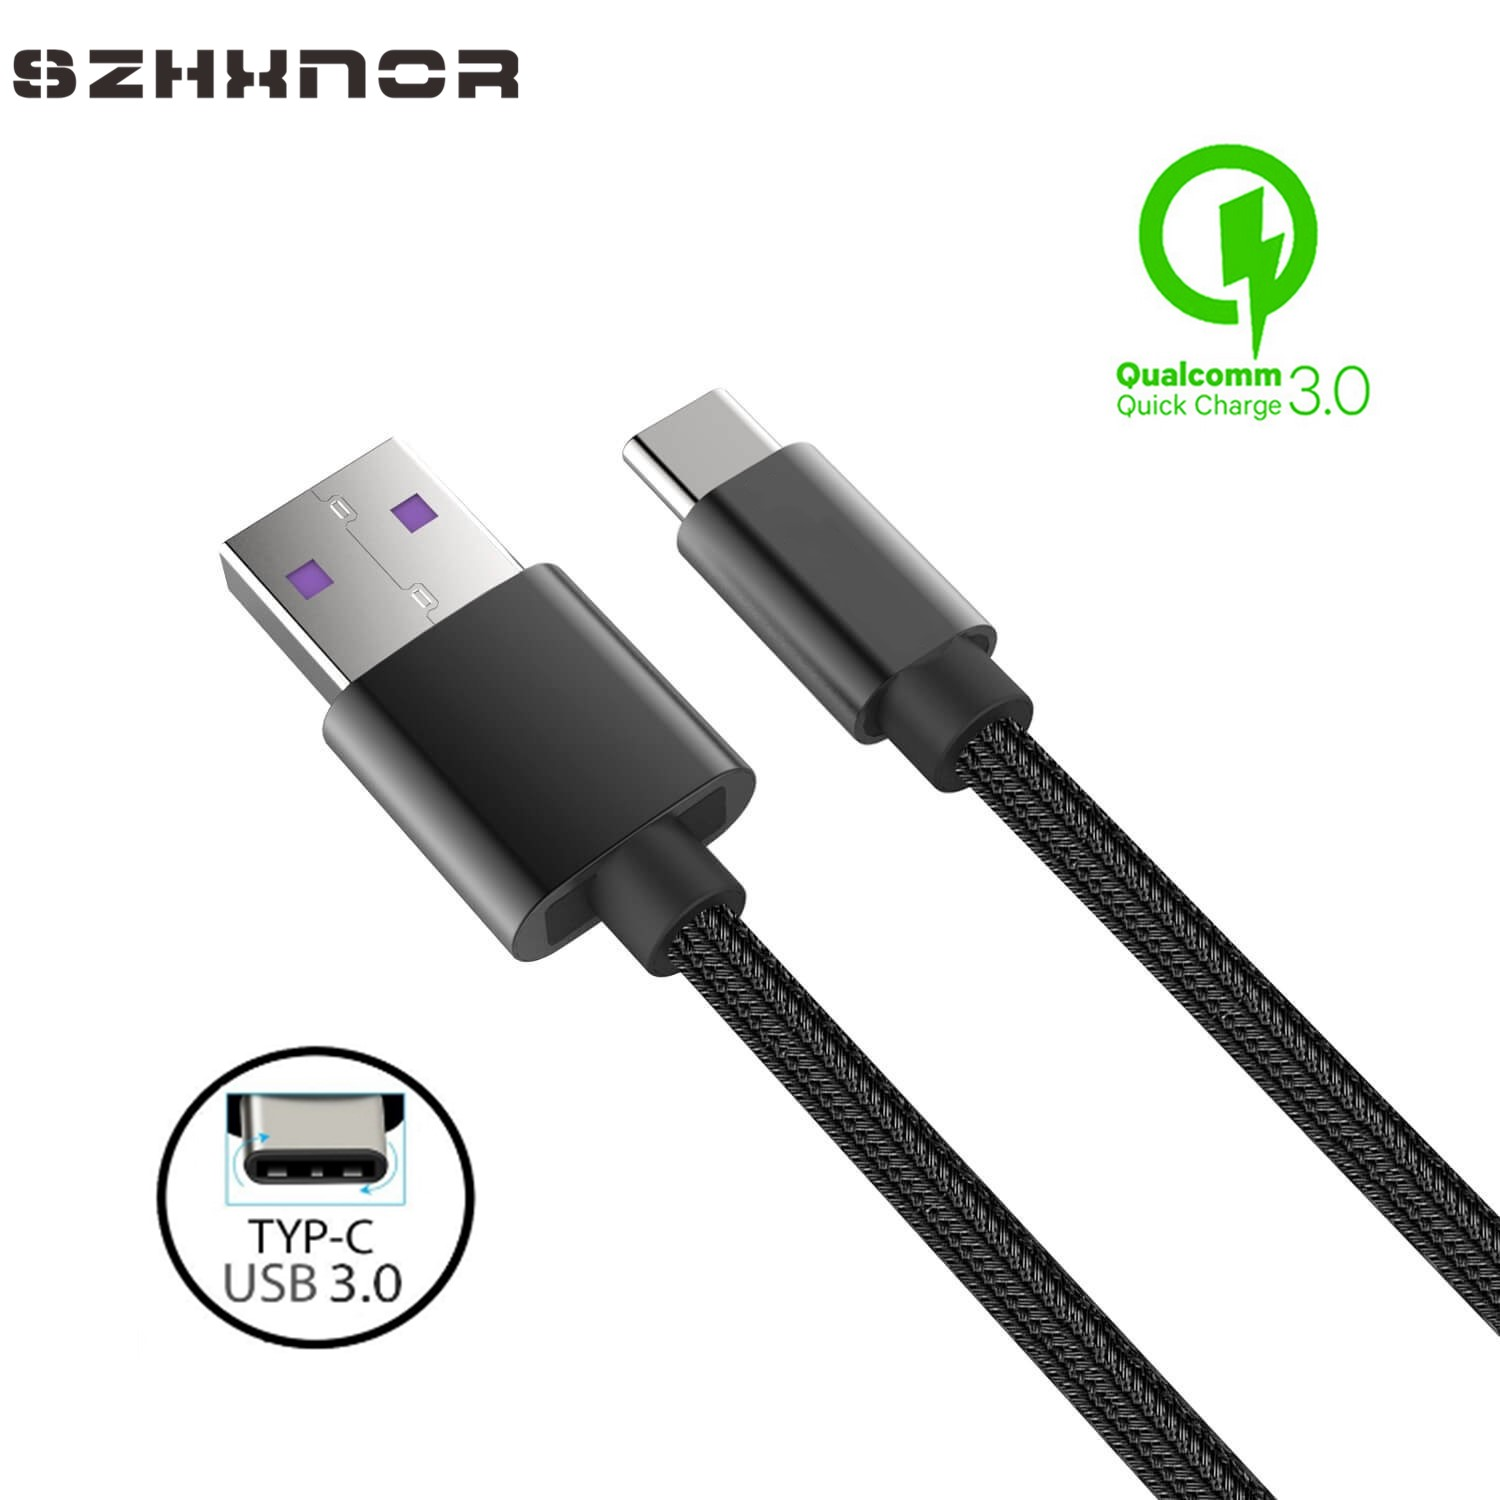 Mobile Phone Adapters Cellphones & Telecommunications 2pcs Type-c Usb C To Micro Usb Converter Charging Adapter For Sony L1 L2 Xa1 Xa2 Xz Xz1 Xz2 Xz3 Compact Ultar Plus Premium